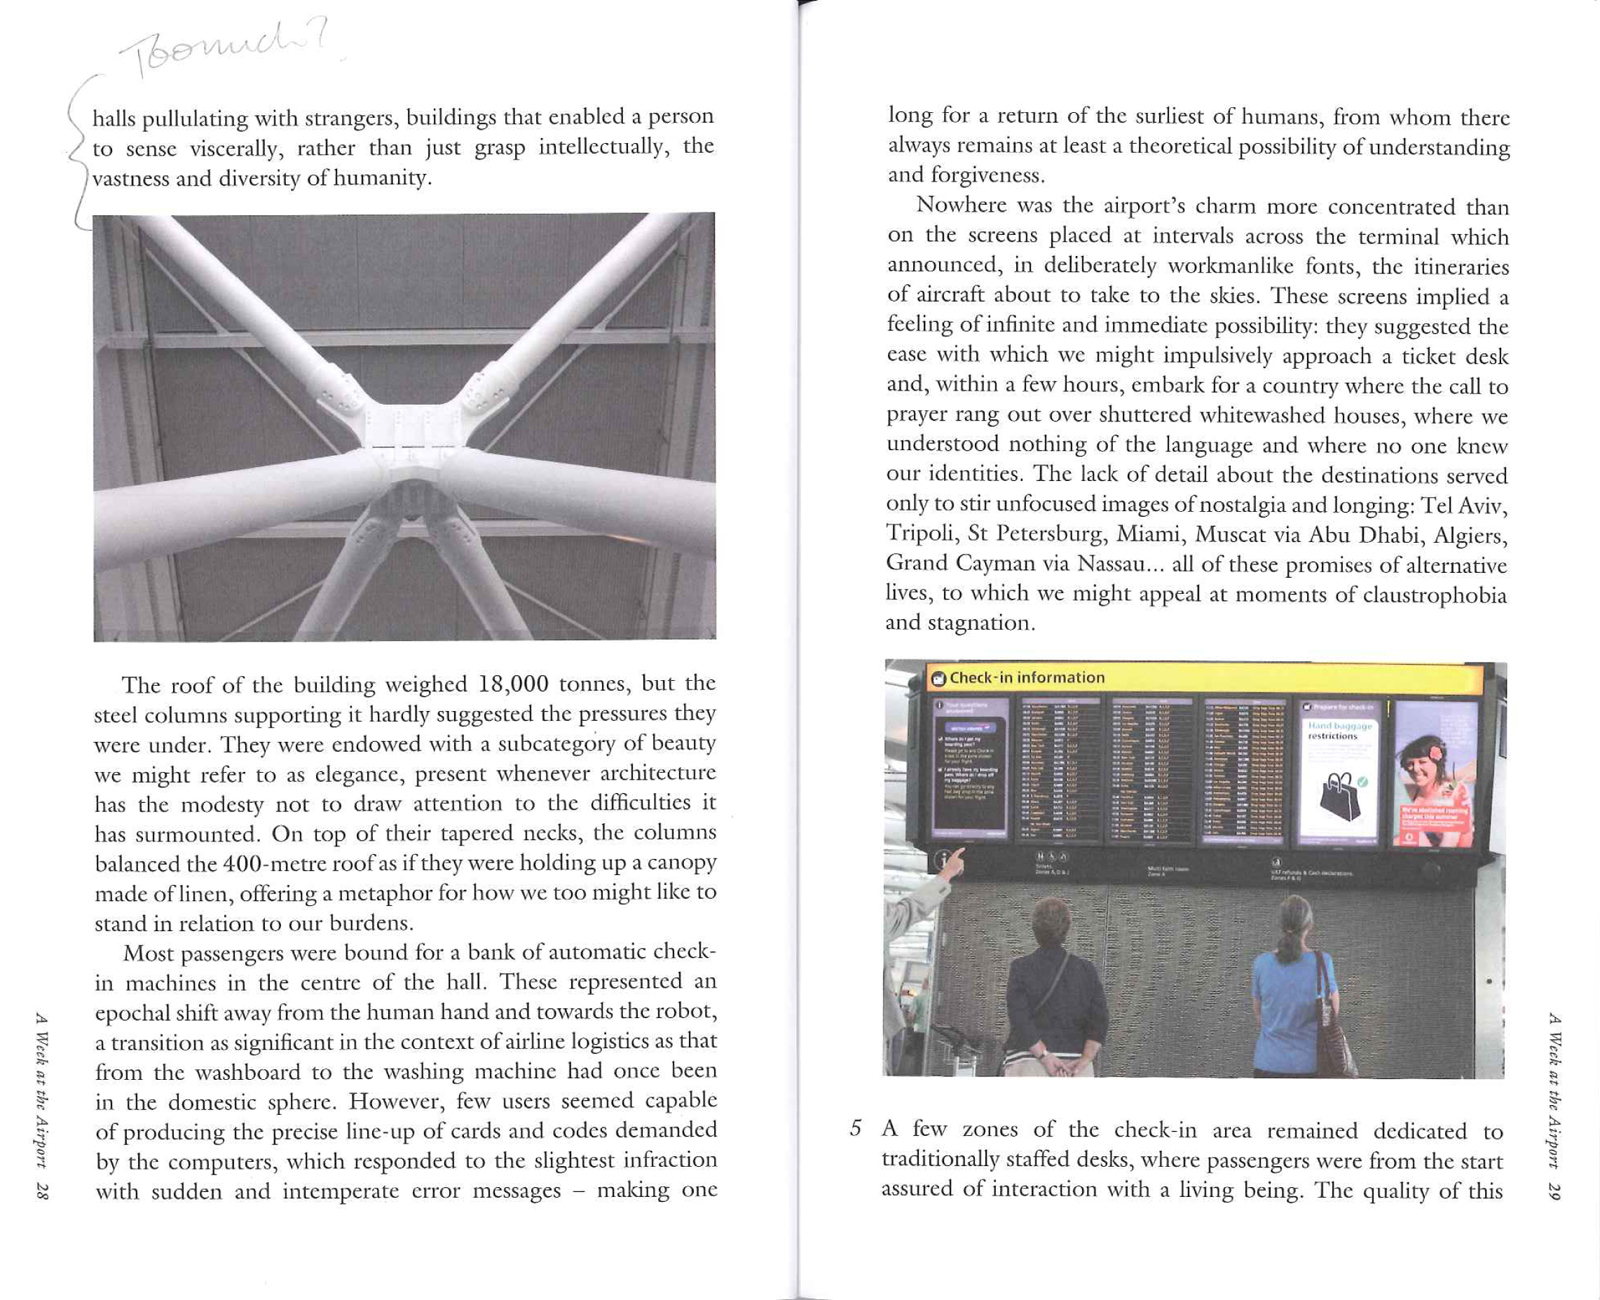 This spread from the book shows two points of interest to travelers: the stunning supports Richard Rogers designed to keep Terminal 5 up, and a list of gates for passengers. Photos by Richard Baker.